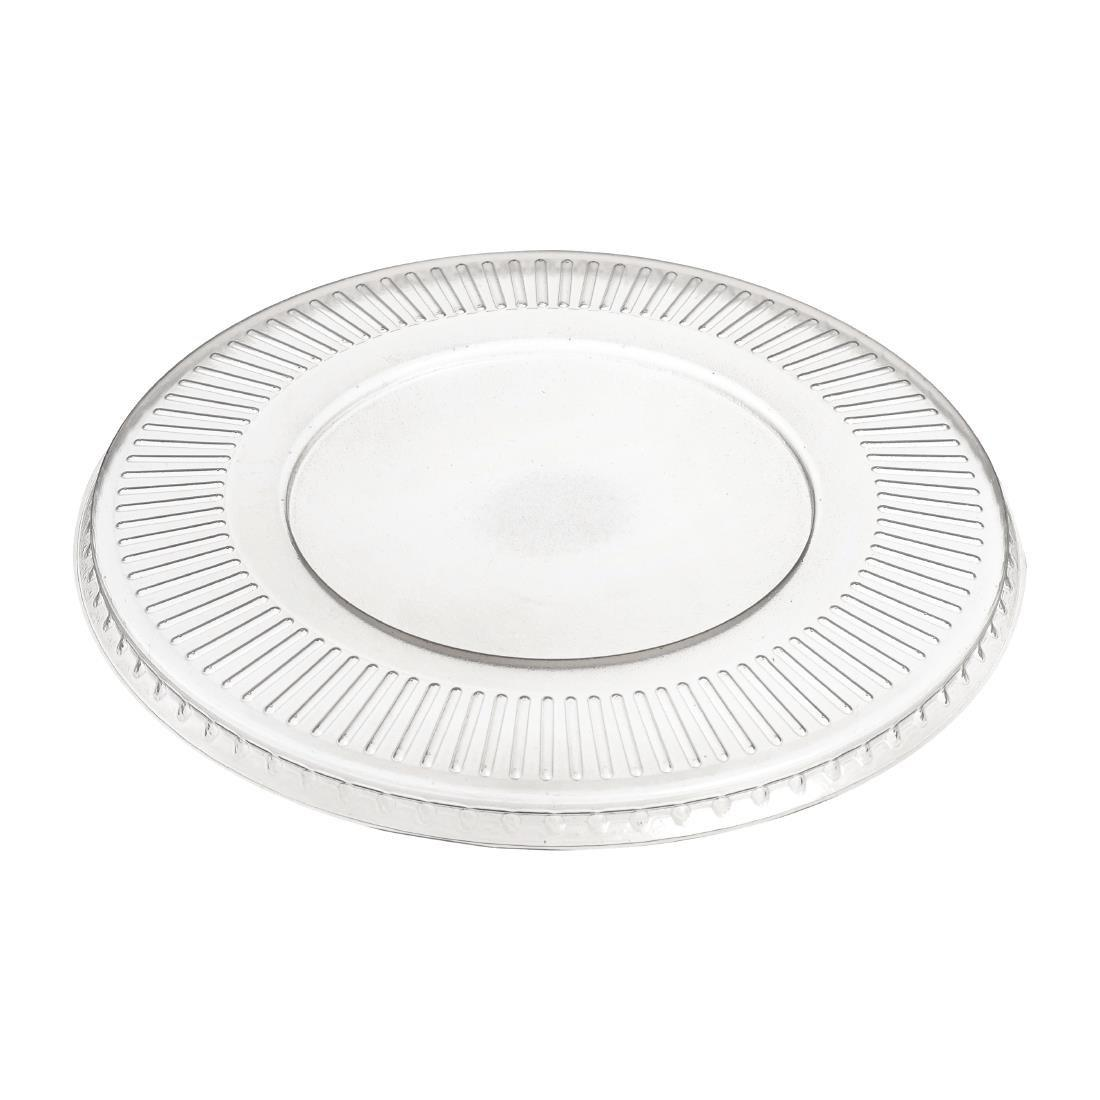 FD7 - Solia Recyclable Polypropylene Mix Bagasse Bowl Lids